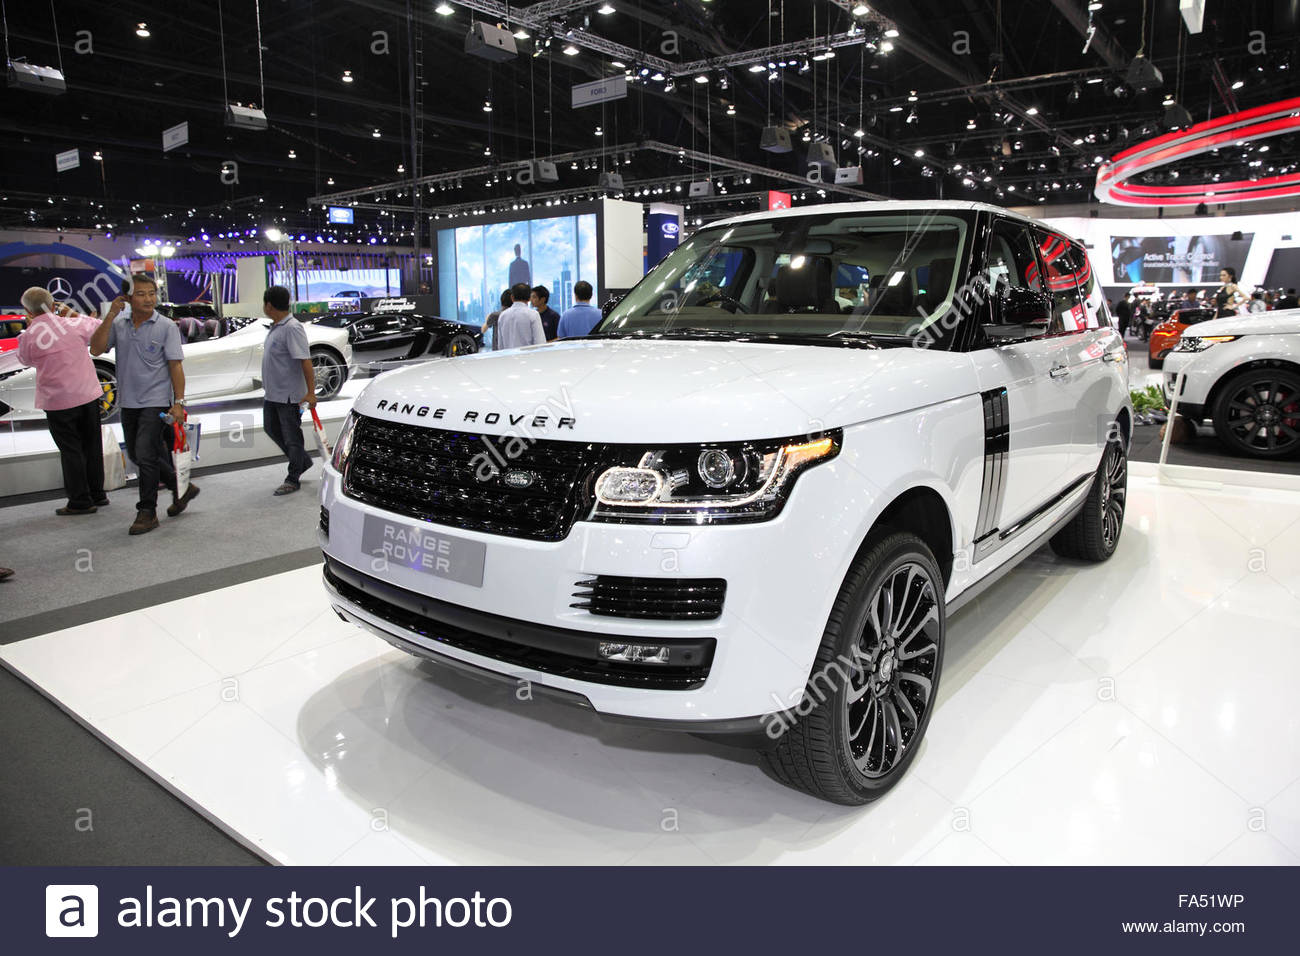 bangkok - december 11: range rover car on display at the motor expo